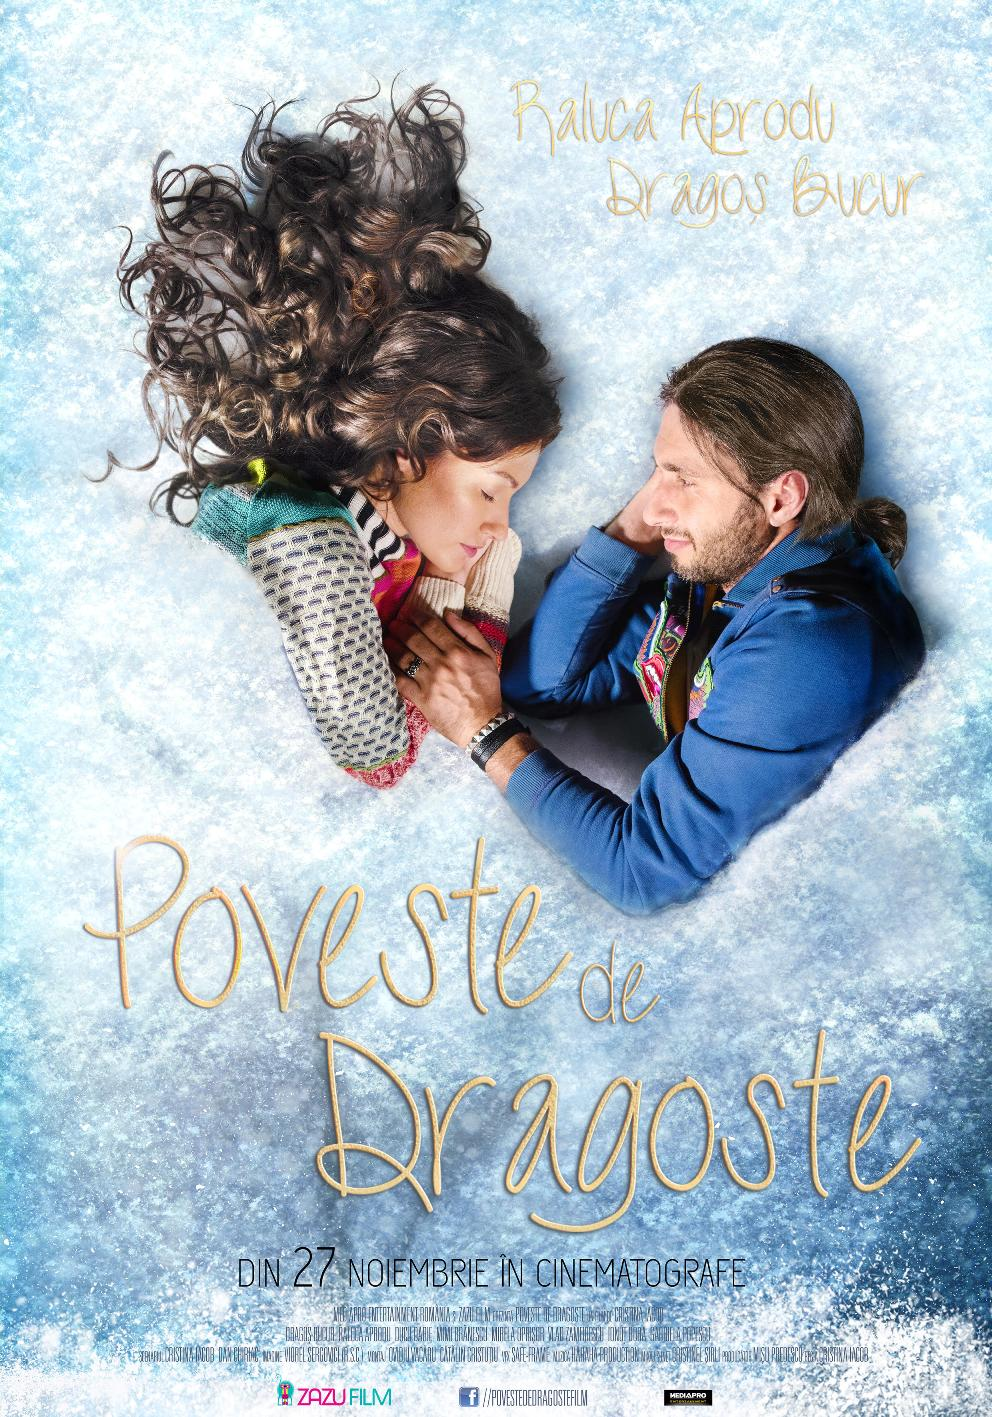 Poveste de dragoste (2013) - Photo